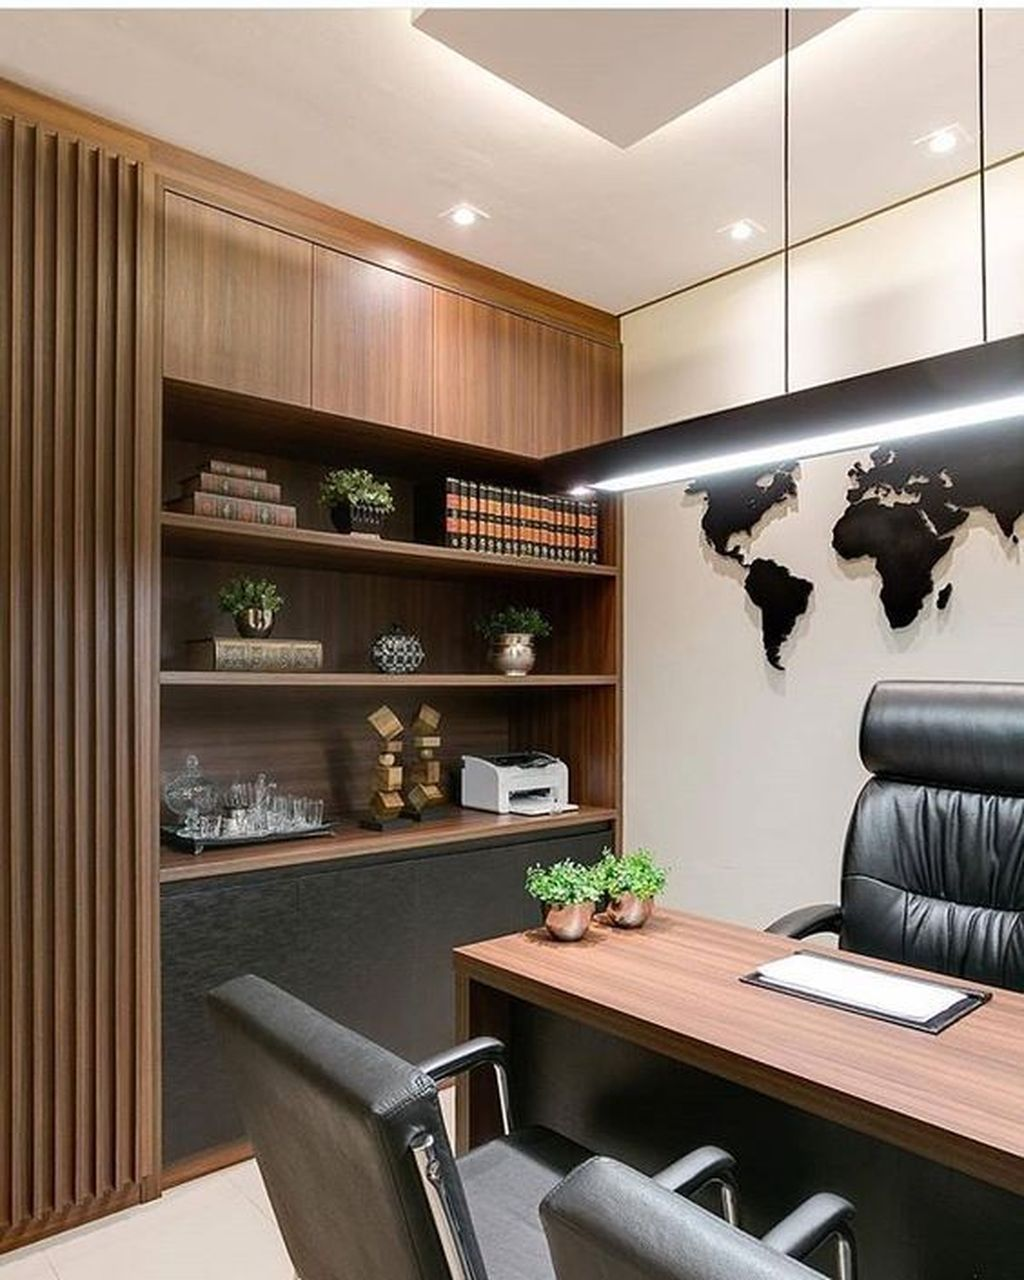 43 Extraordinary Small Home Office Design Ideas With Traditional Themes Modern Office Interiors Small Office Design Home Office Design